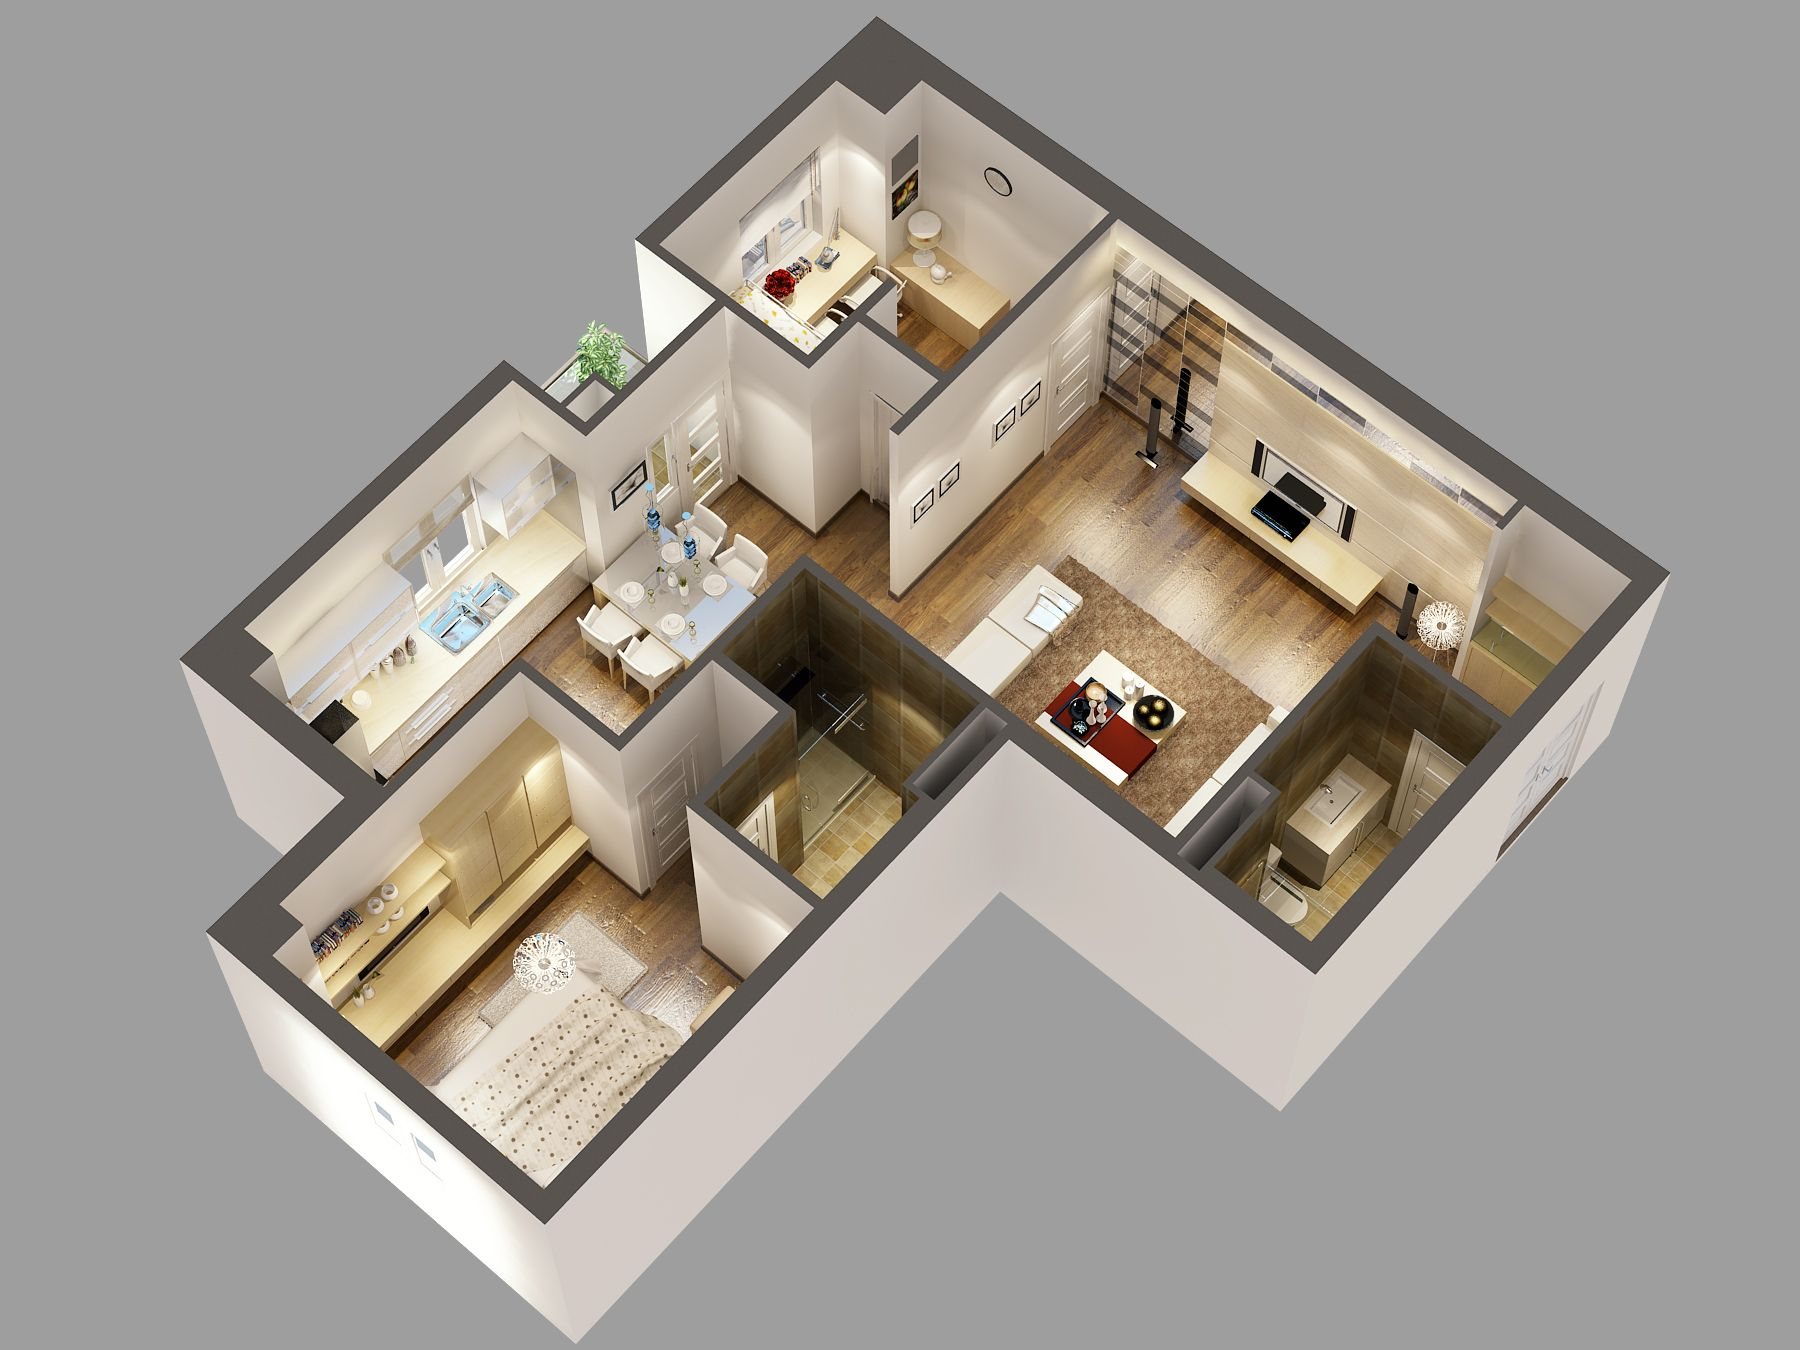 House design for mac software free - 3d Floor Plan Software Free With Awesome Modern Interior Design With Laminate Floooring For 3d Floor